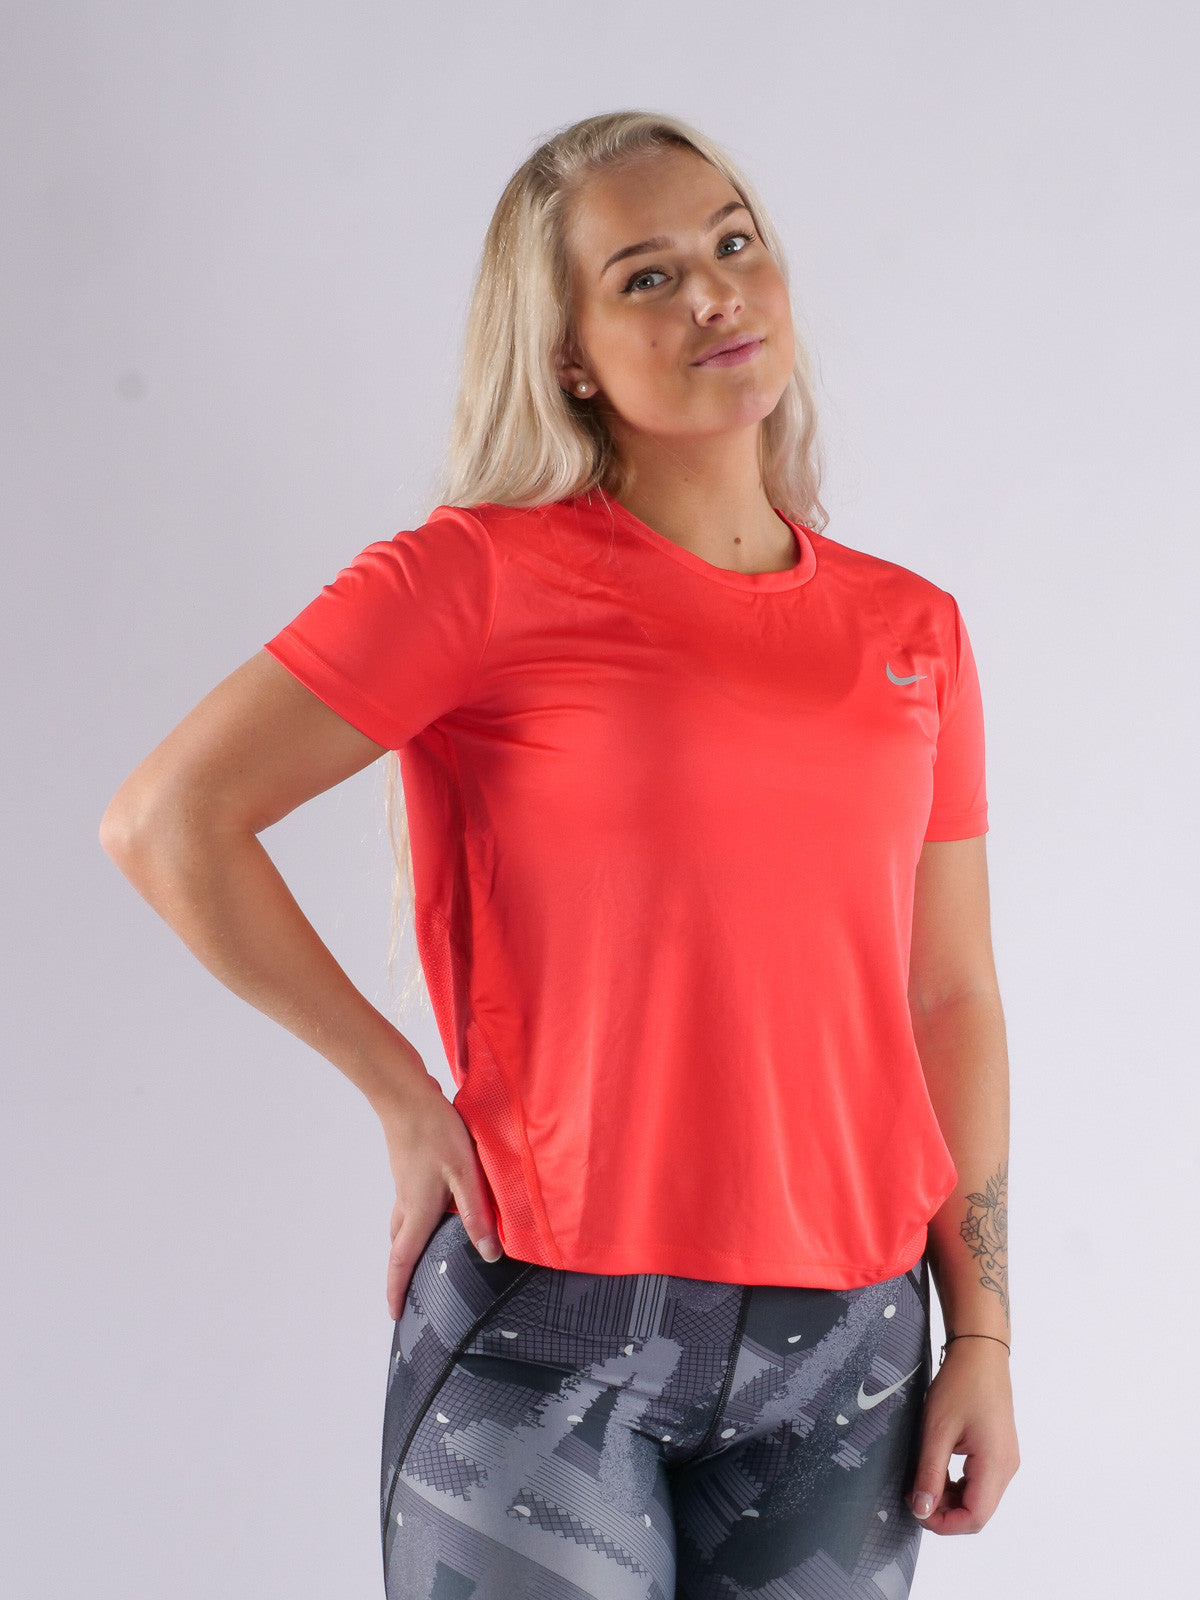 Women's Nike Running Miler Shirt       Small        AJ8121-850